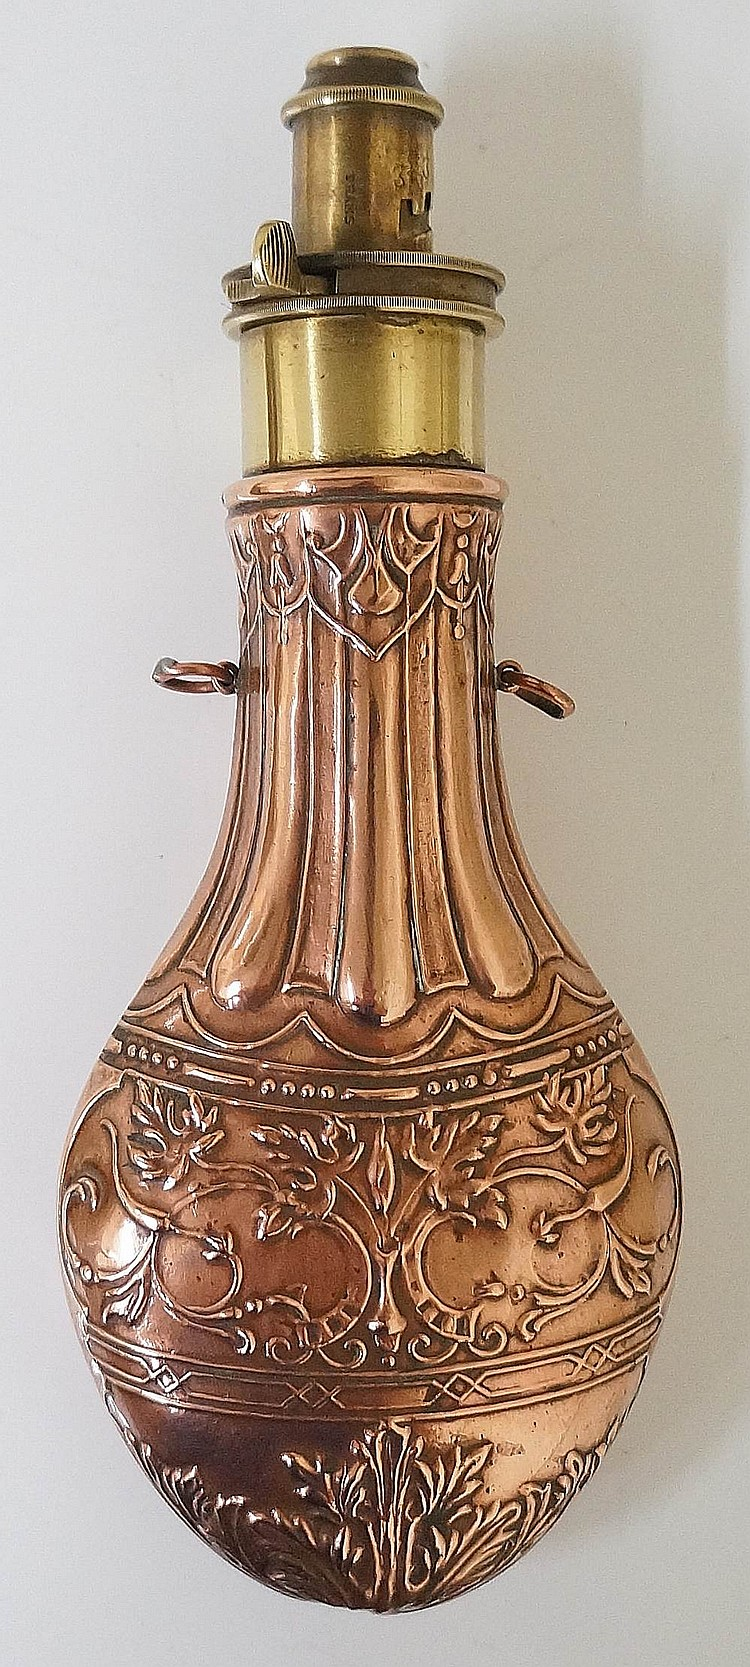 A 19th Century copper and brass shot flask with four position spout, the fl